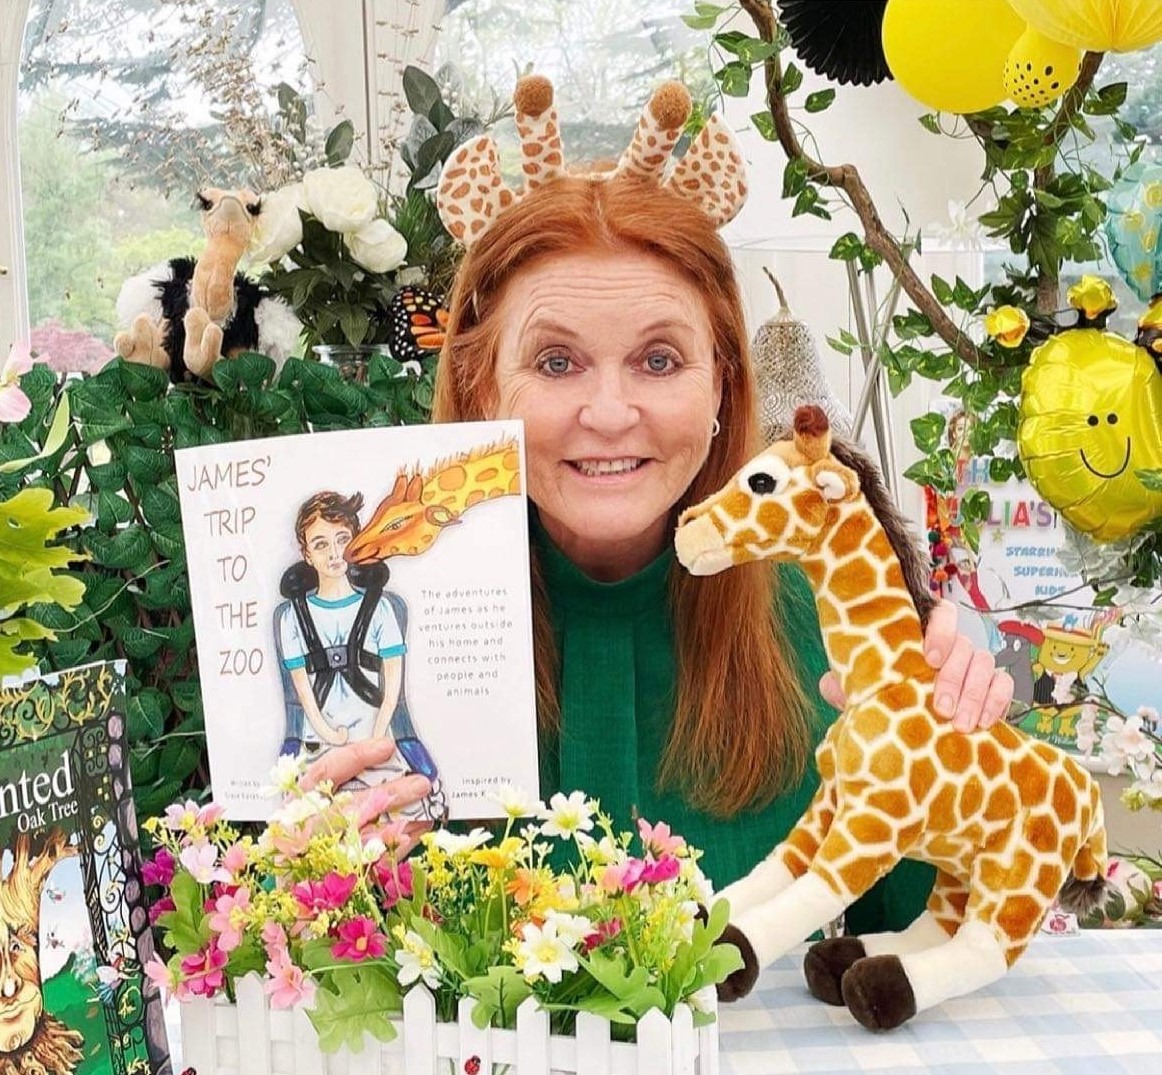 Sarah Ferguson holding children's book James Trip to the Zoo which is designed to inspire and educate people to be inclusive